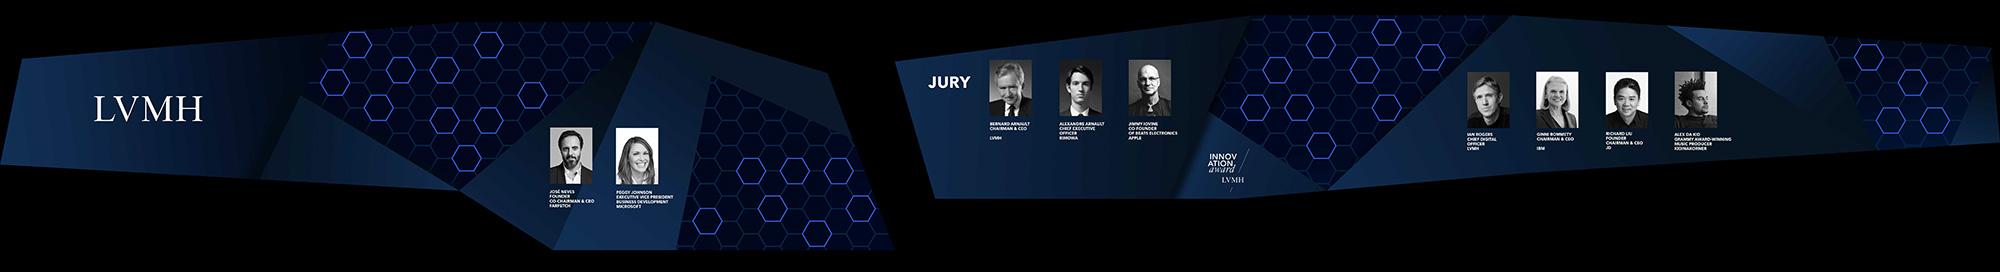 infodecor-jury-lvmh-clemence-devienne